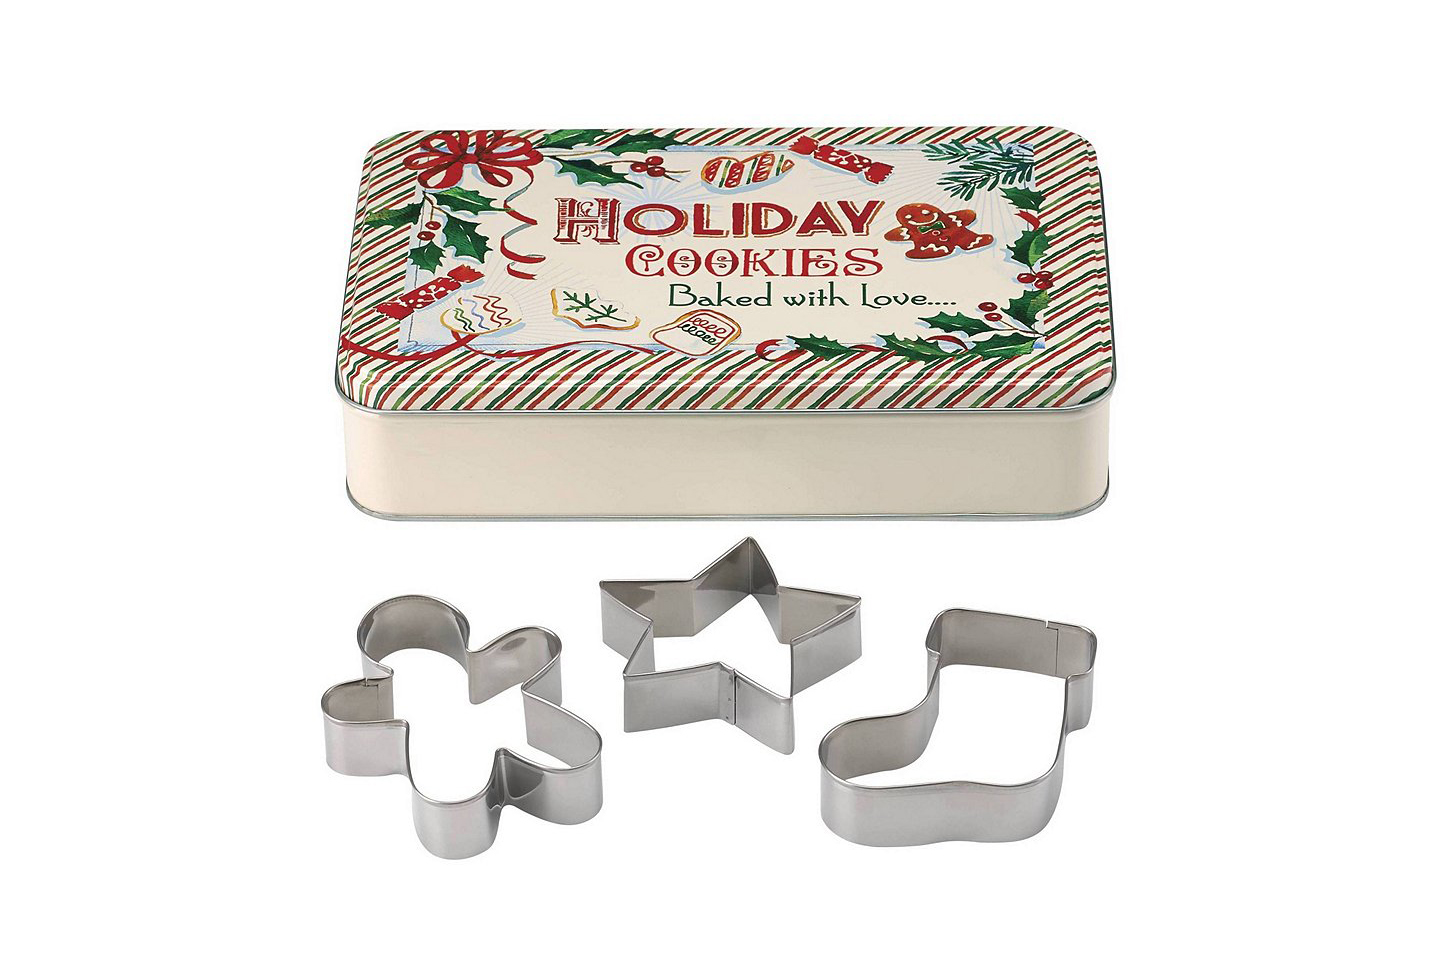 Lenox Home for the Holidays Rectangular Tin with 3 Cookie Cutters